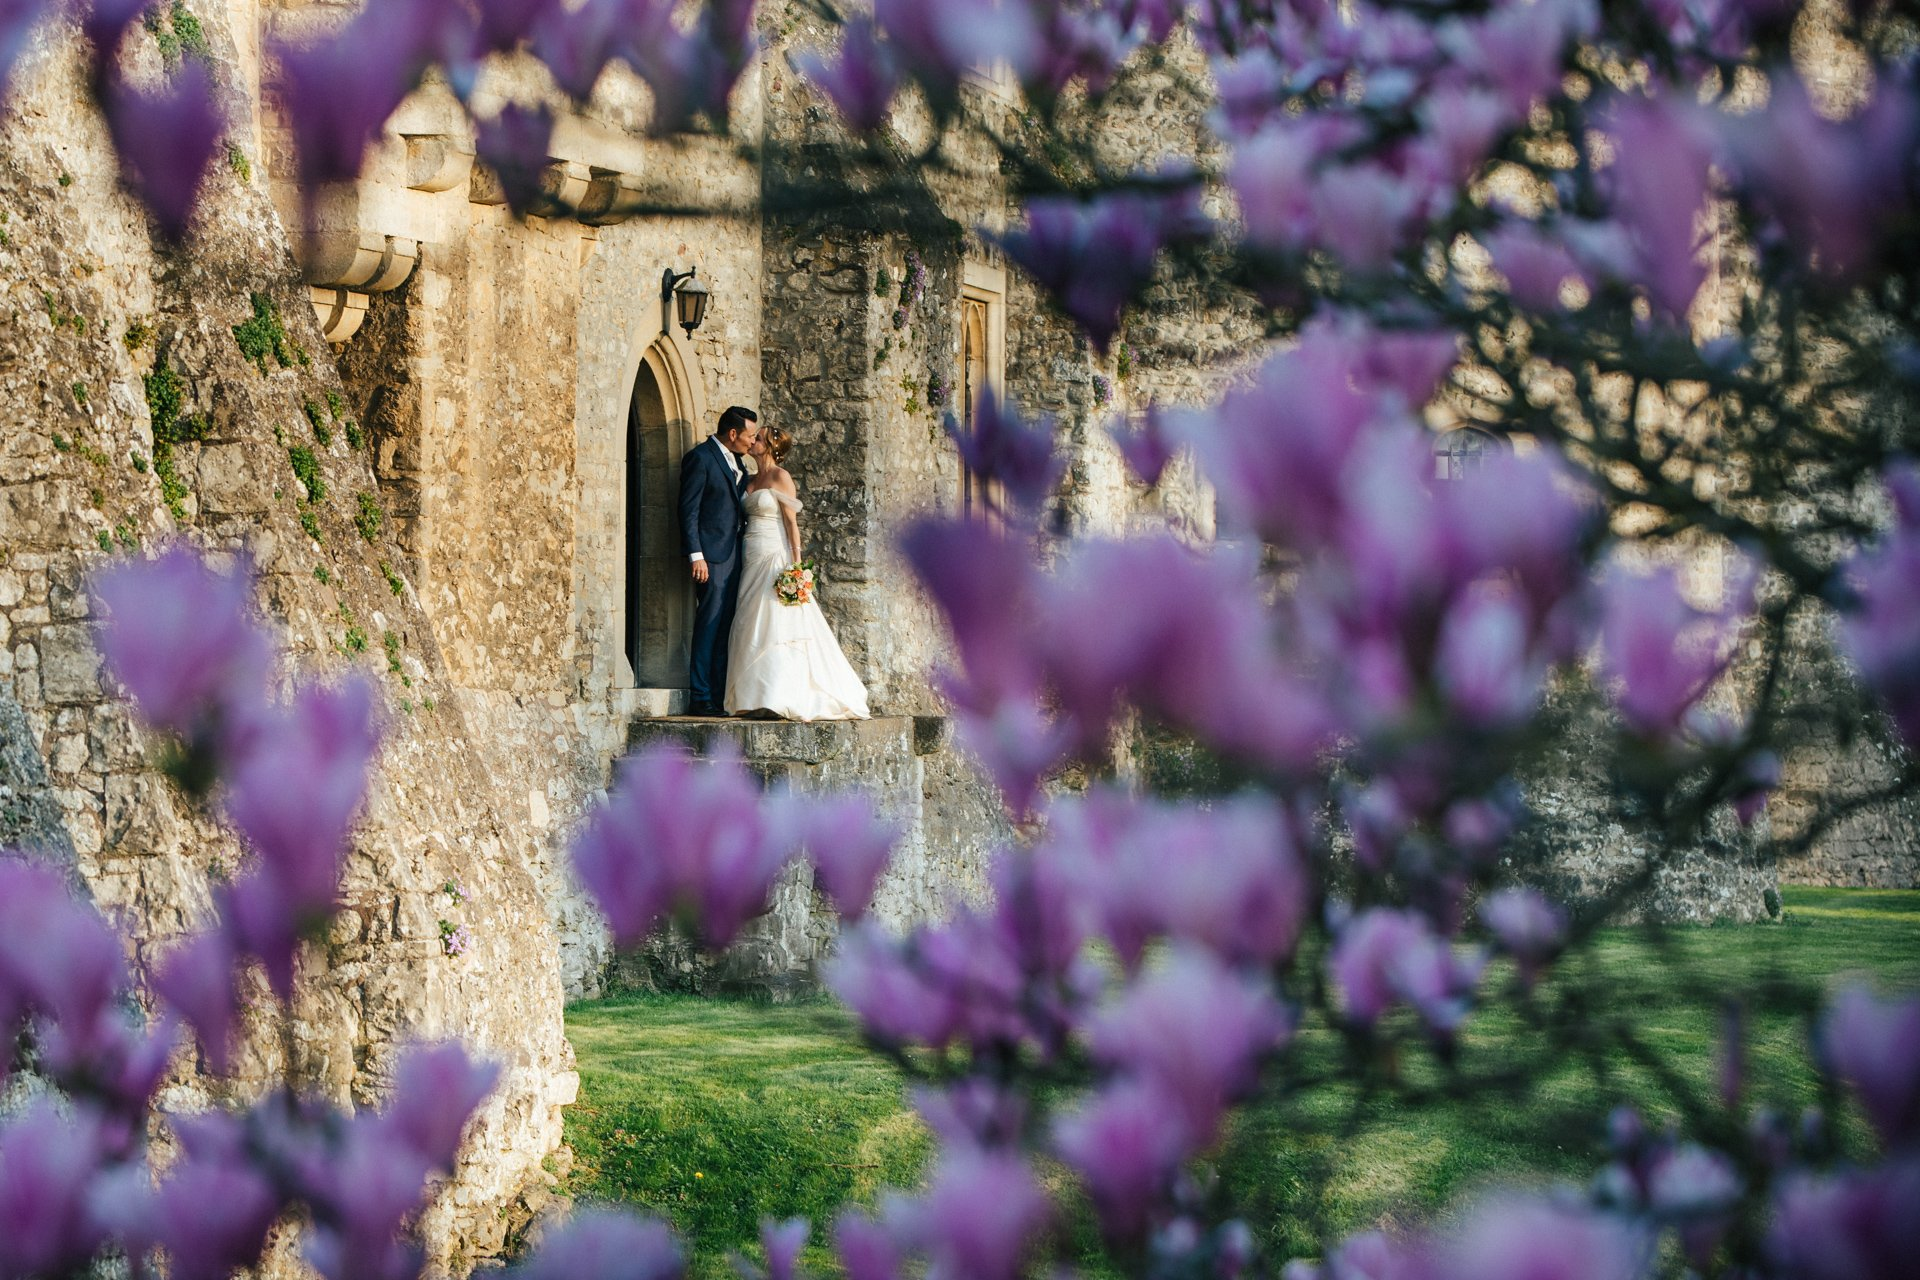 Bride and Groom embracing through the magnolia at Allington Castle